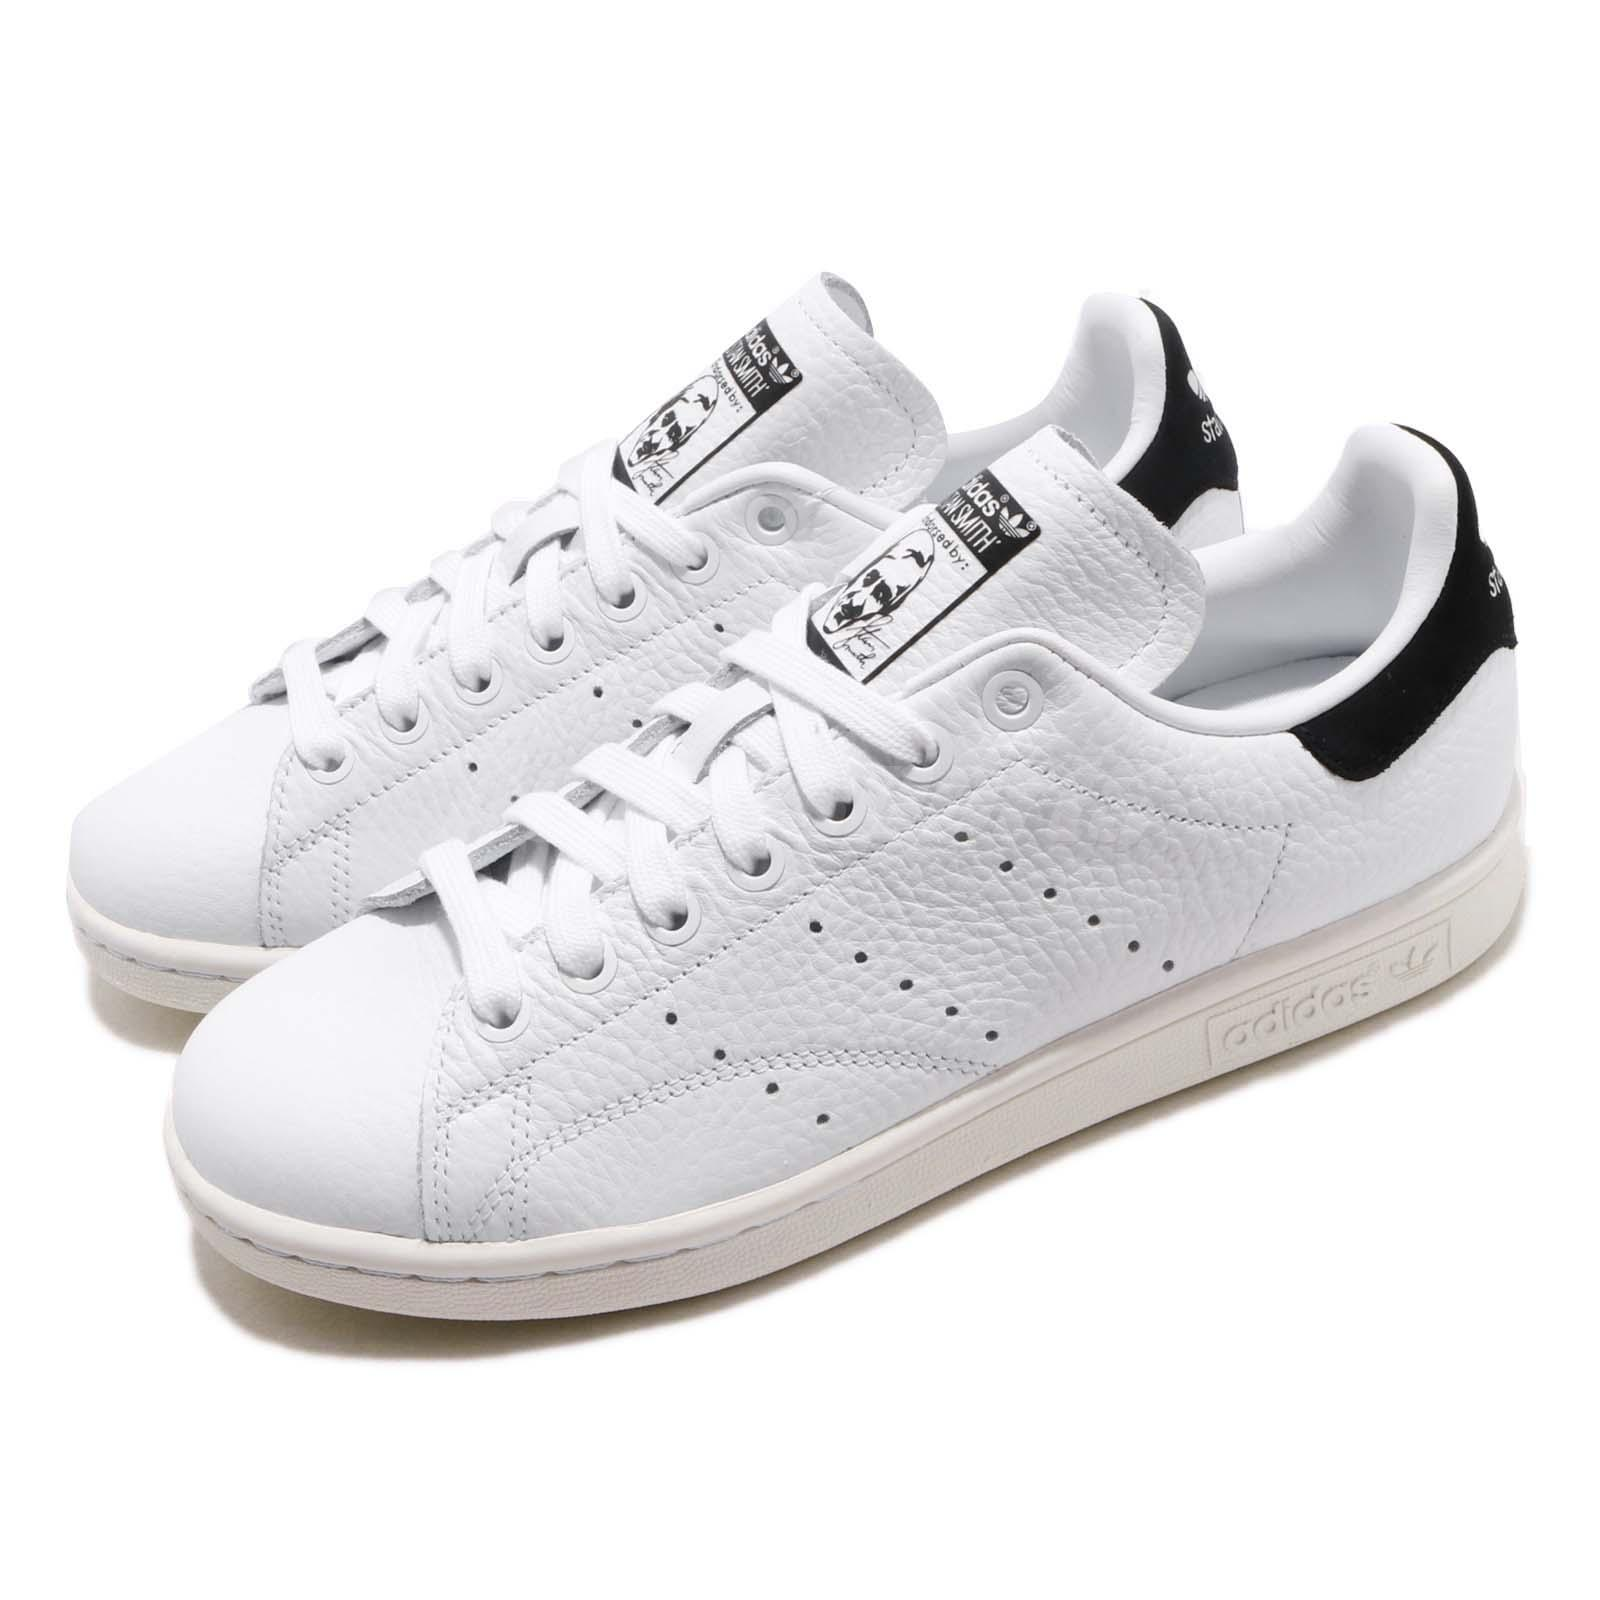 newest 091be 113fa Details about adidas Originals Stan Smith White Black Men Women Casual  Shoes Sneakers BD7436